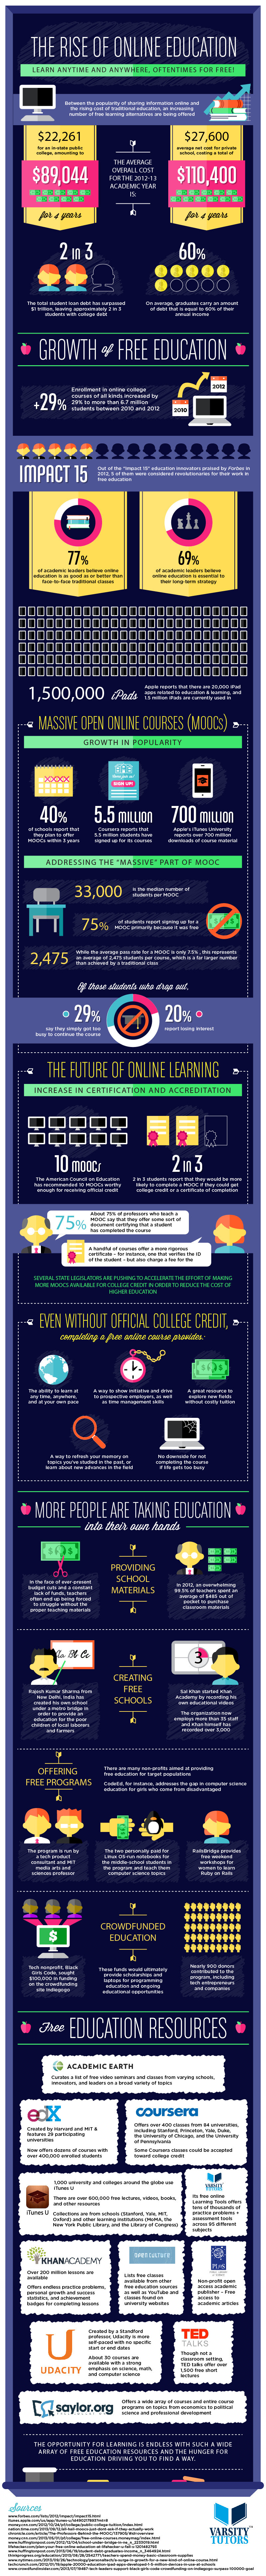 Infographic: The Rise of Online Education